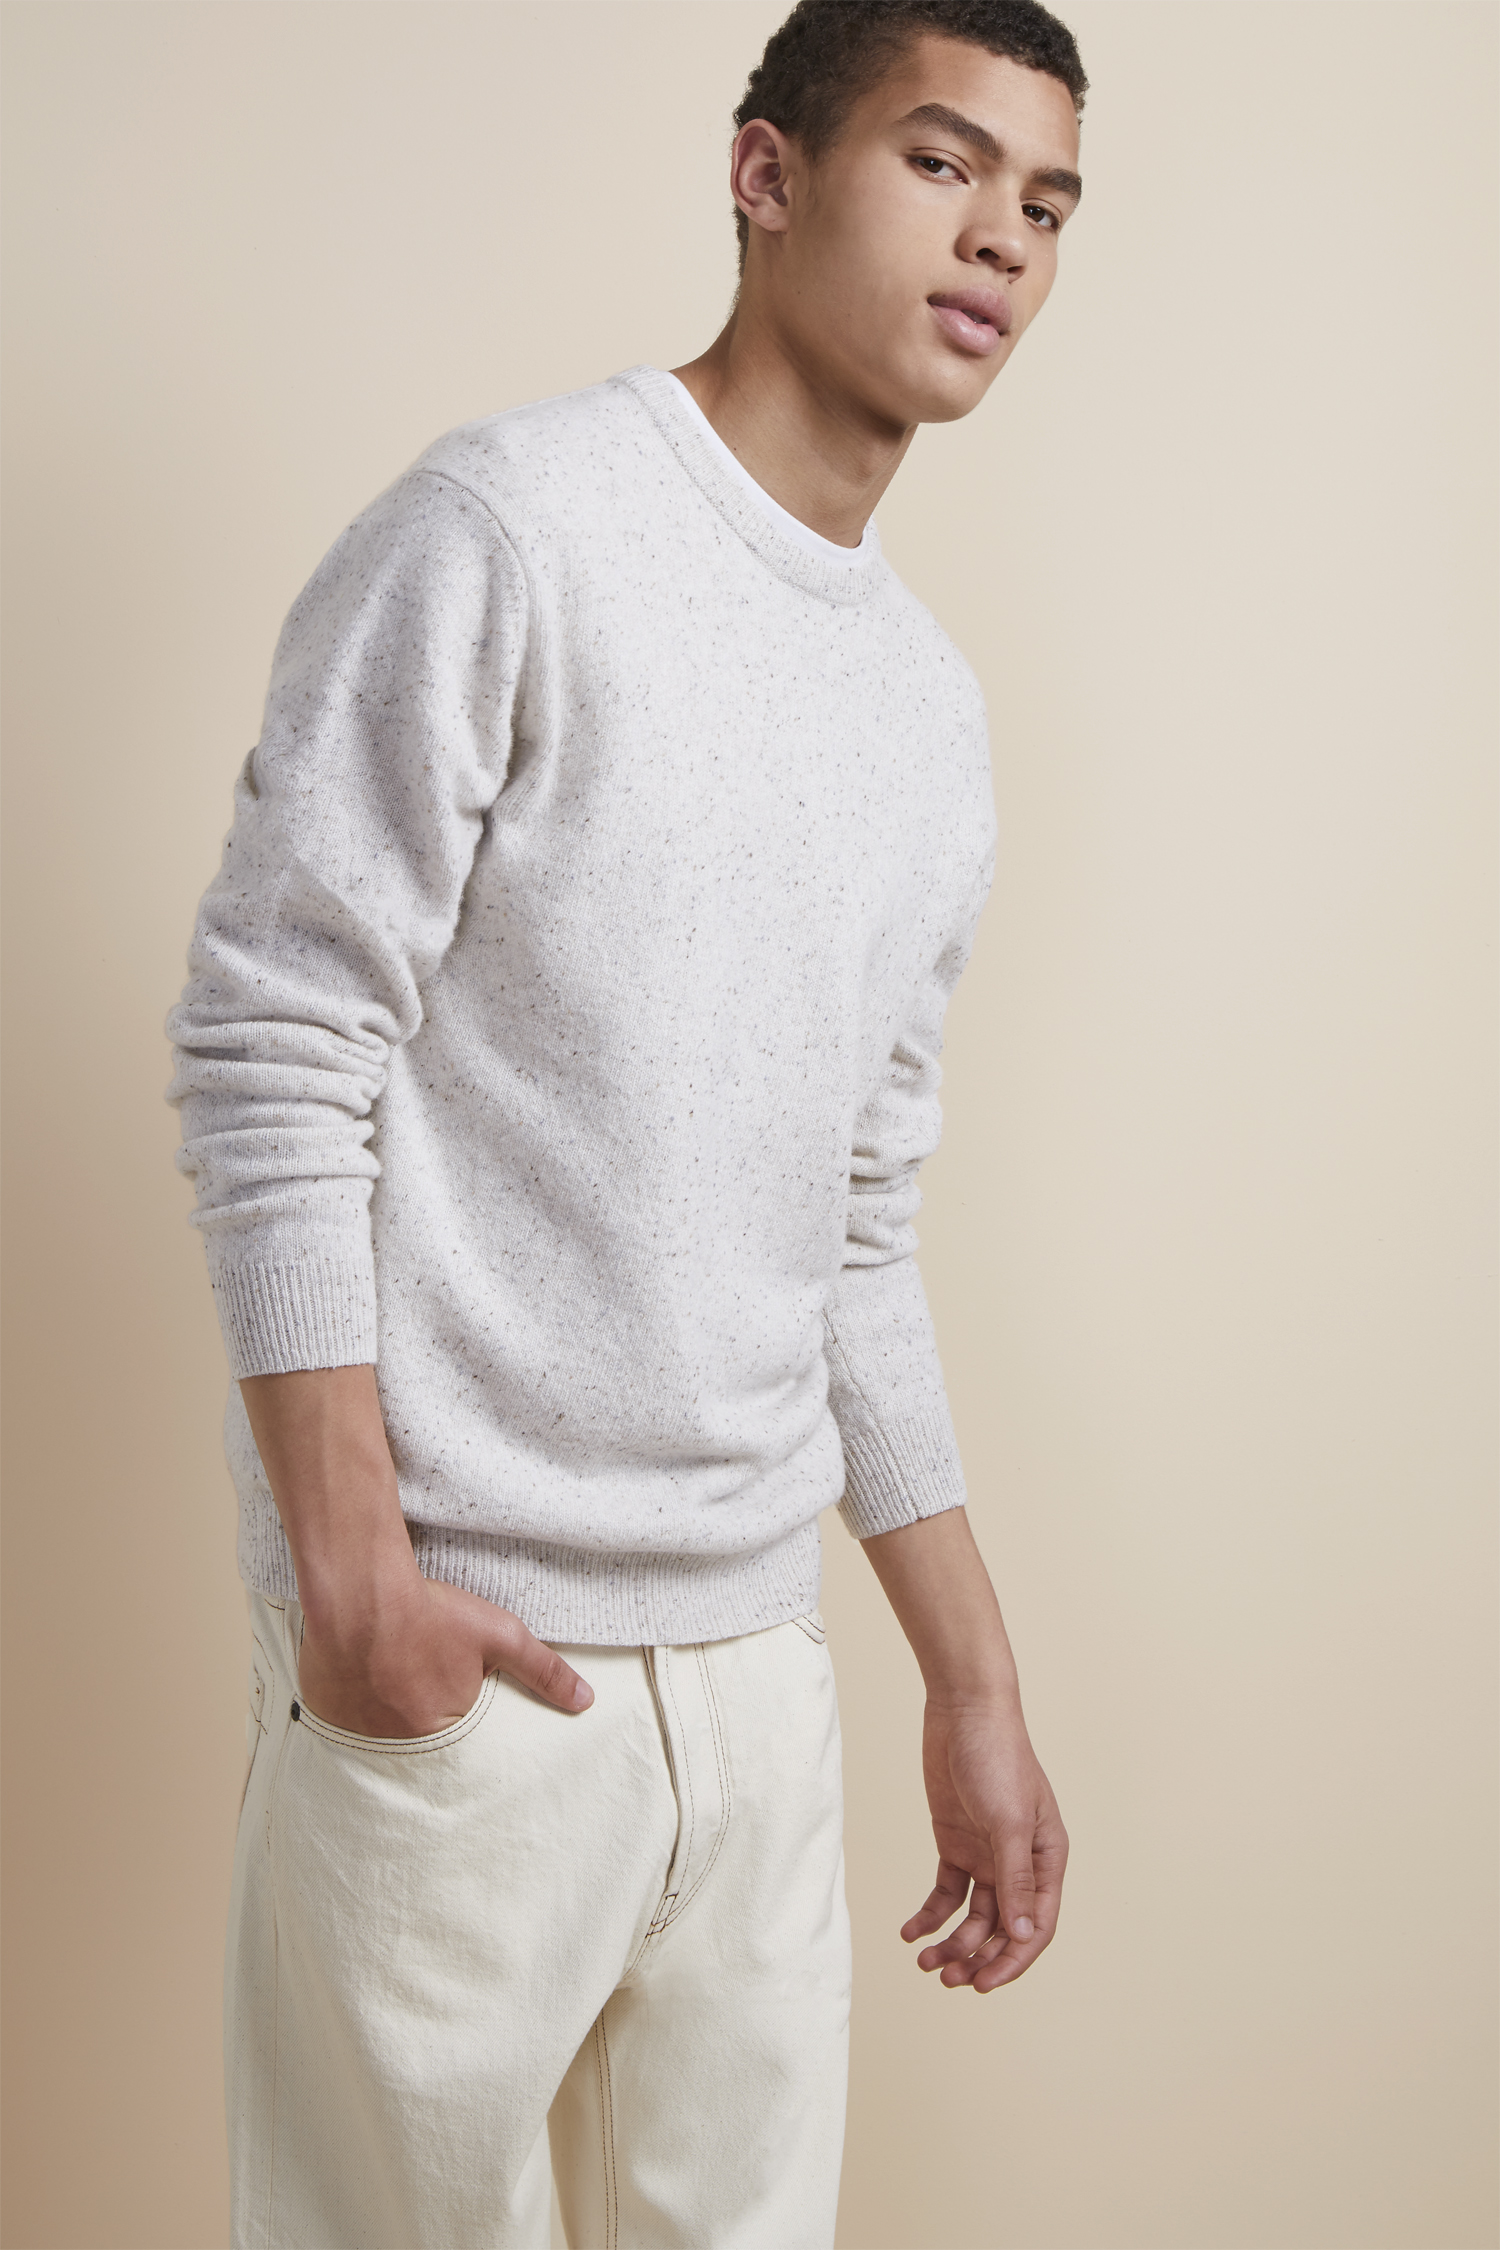 French Connection Mens Oversized Donegal Crewneck Sweater